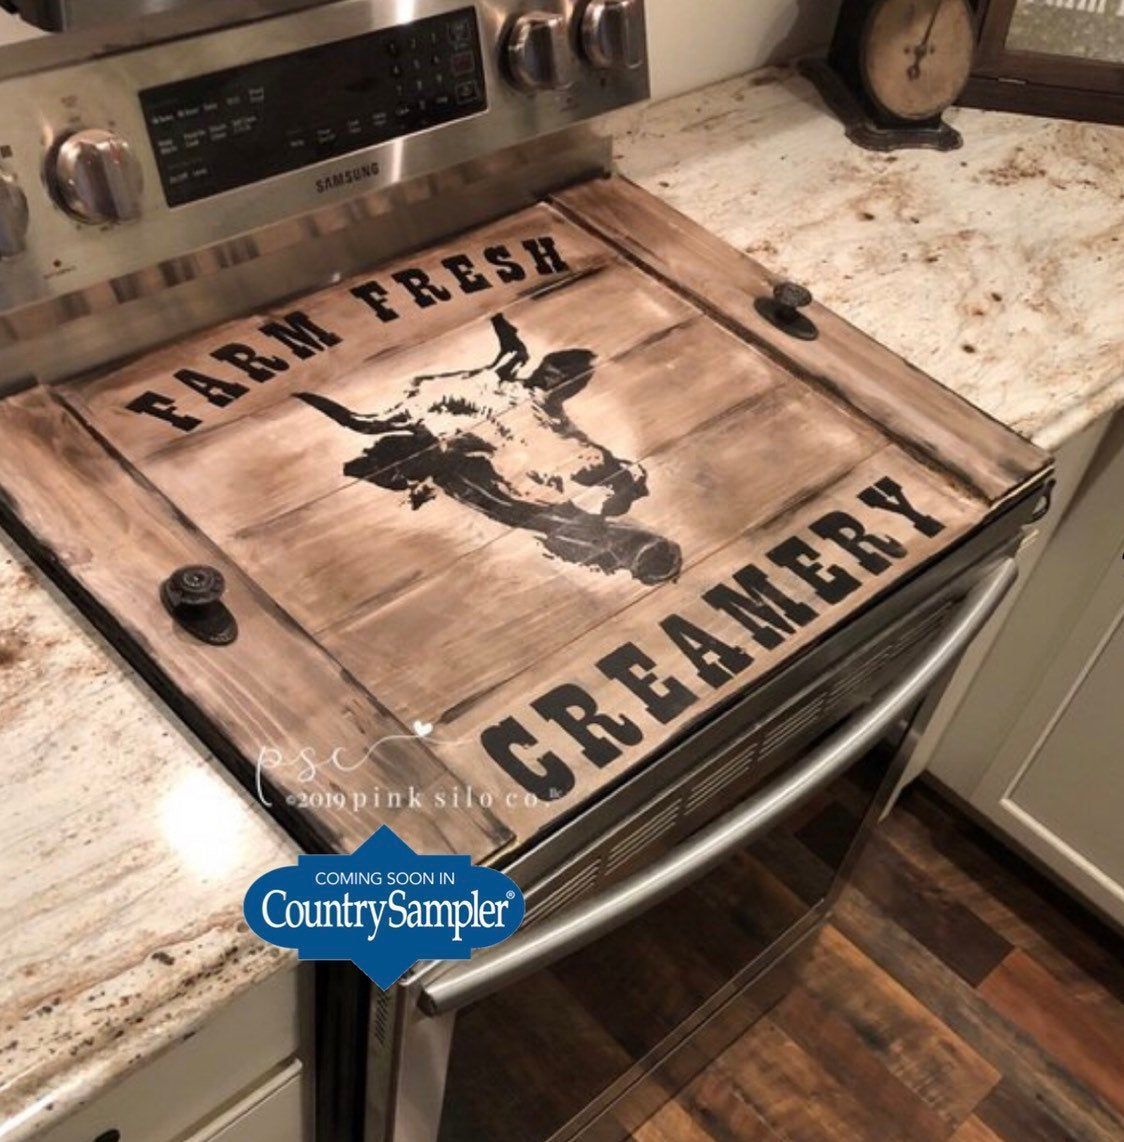 Farmhouse Stove Top Board Cow Stove Cover Dairy Stove Cover Noodle Board Cover For Stove Rustic Kitchen Decor 2020